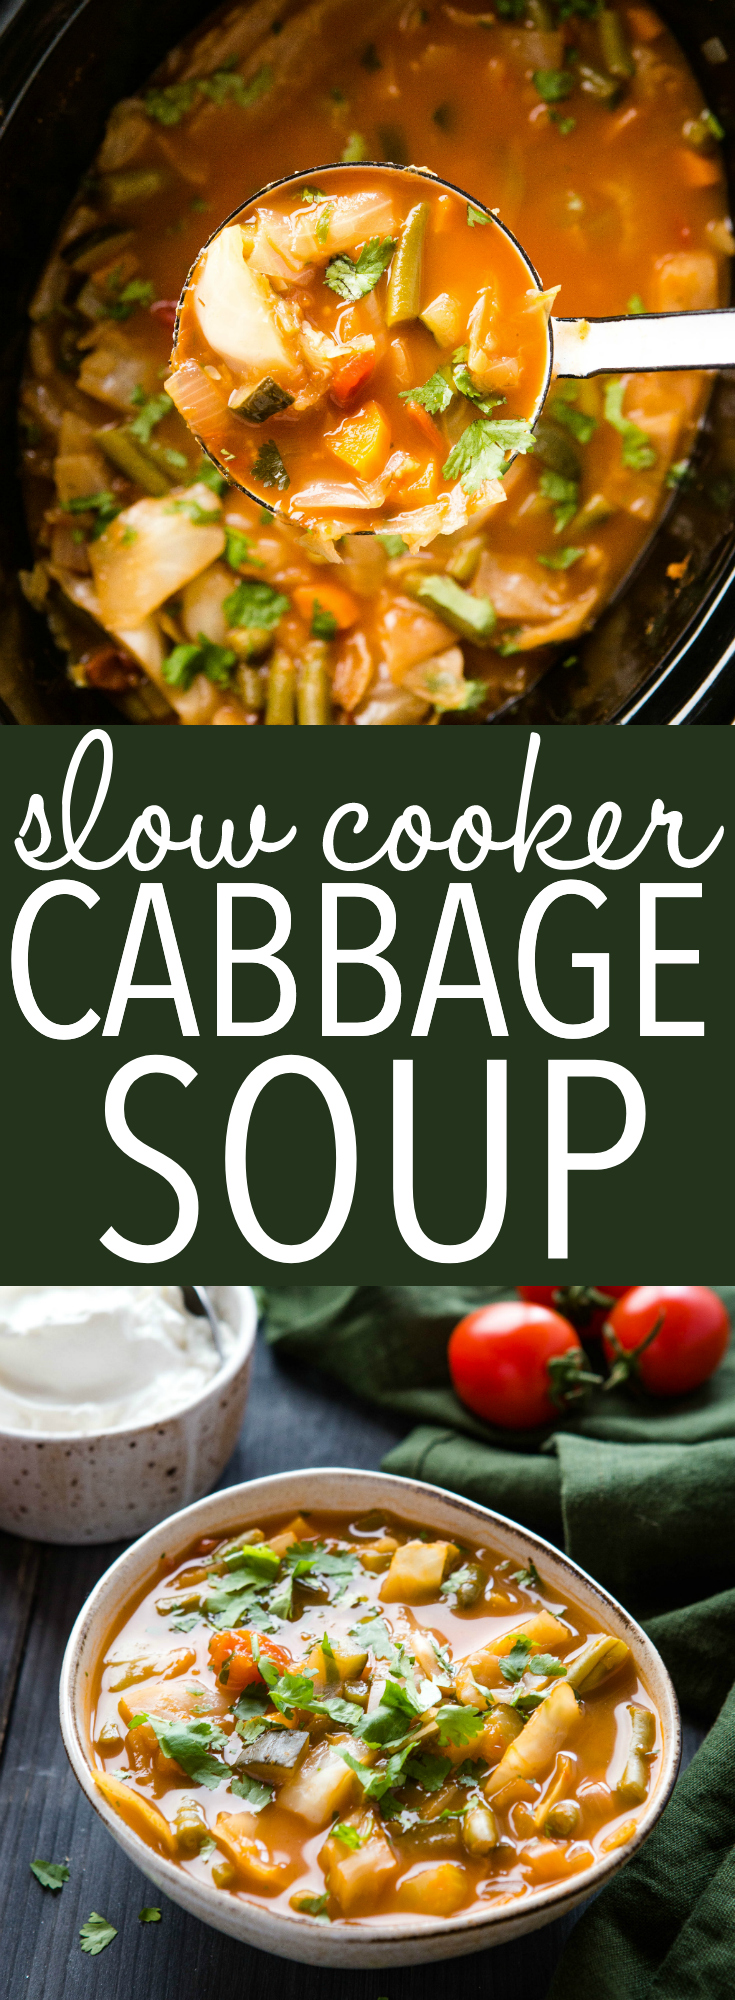 Crock Pot Cabbage Soup is the perfect healthy meal that's low carb and low in calories, but high in flavour! Make this keto soup recipe in your slow cooker for easy meal prep! Recipe from thebusybaker.ca - #cabbagesoup #ketosoup #lowcarbsoup #cabbagerecipe #slowcooker via @busybakerblog